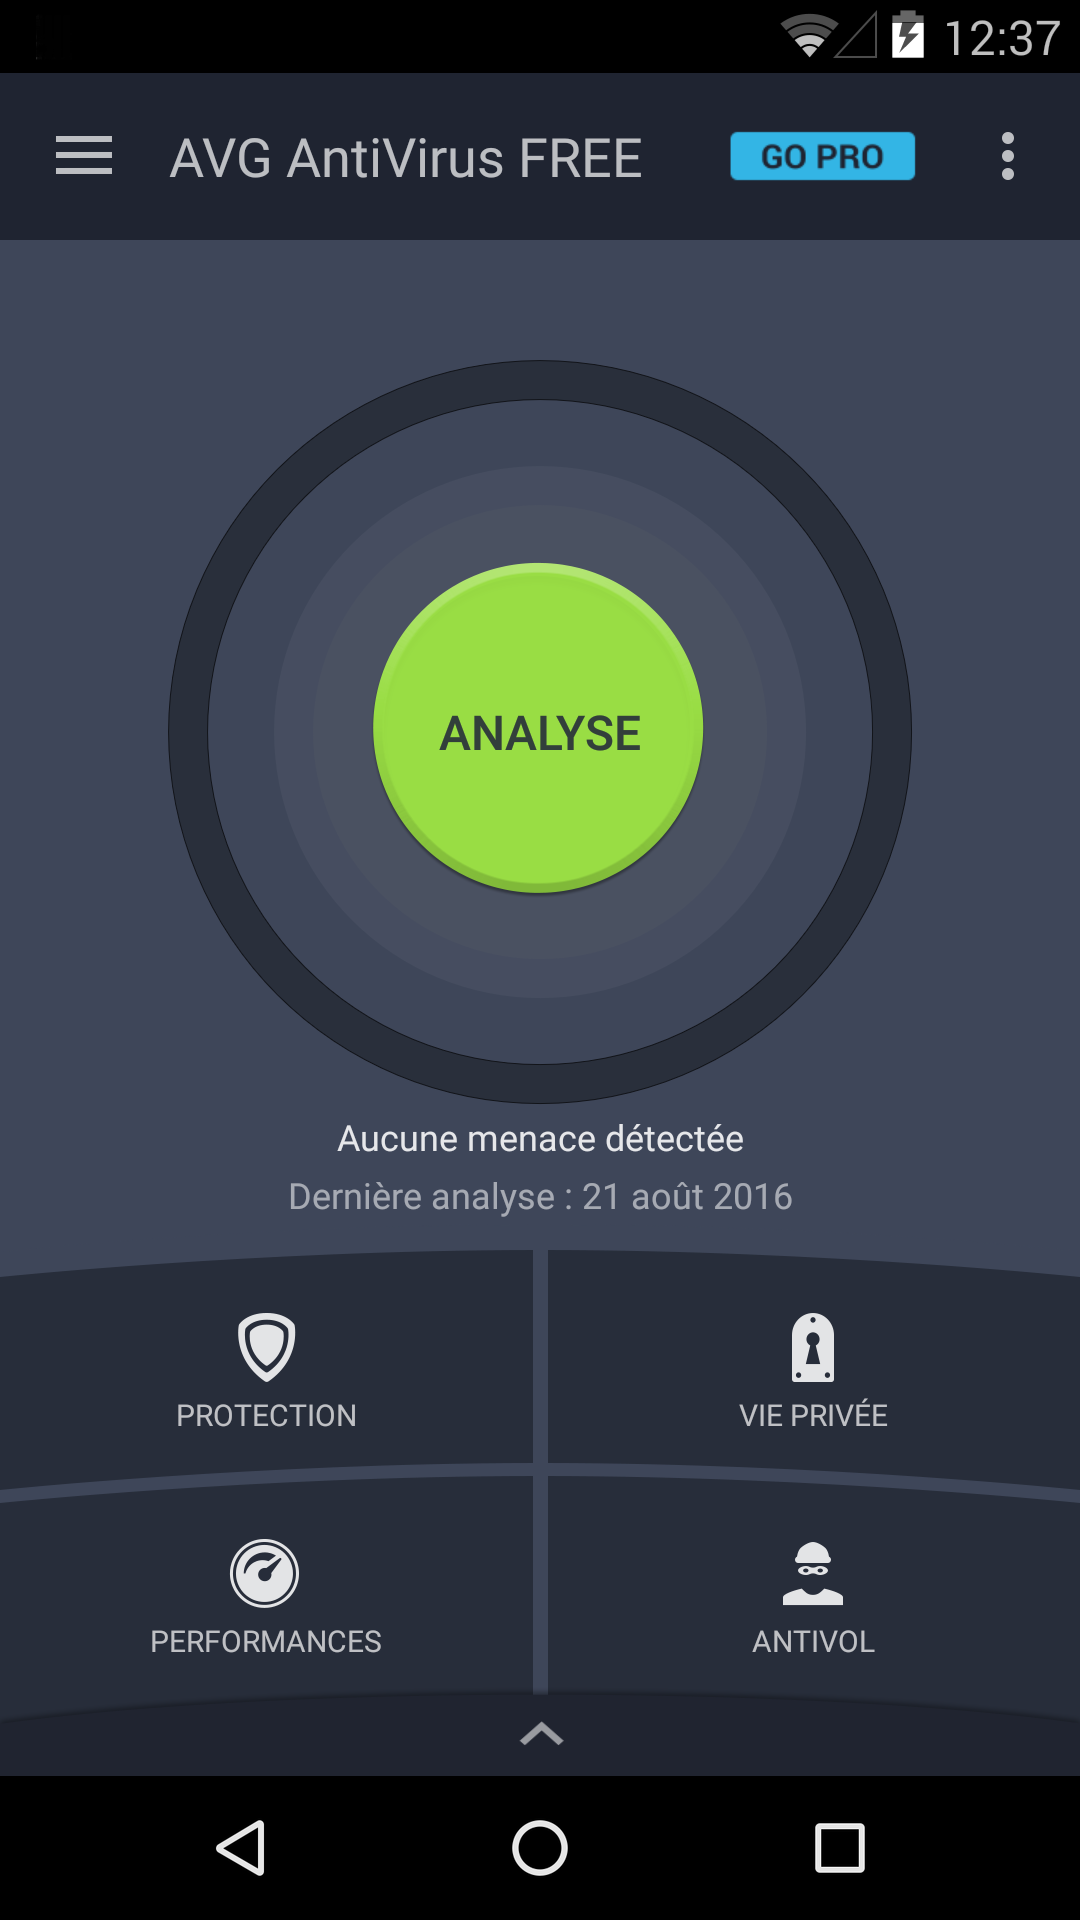 avg antivirus mobile